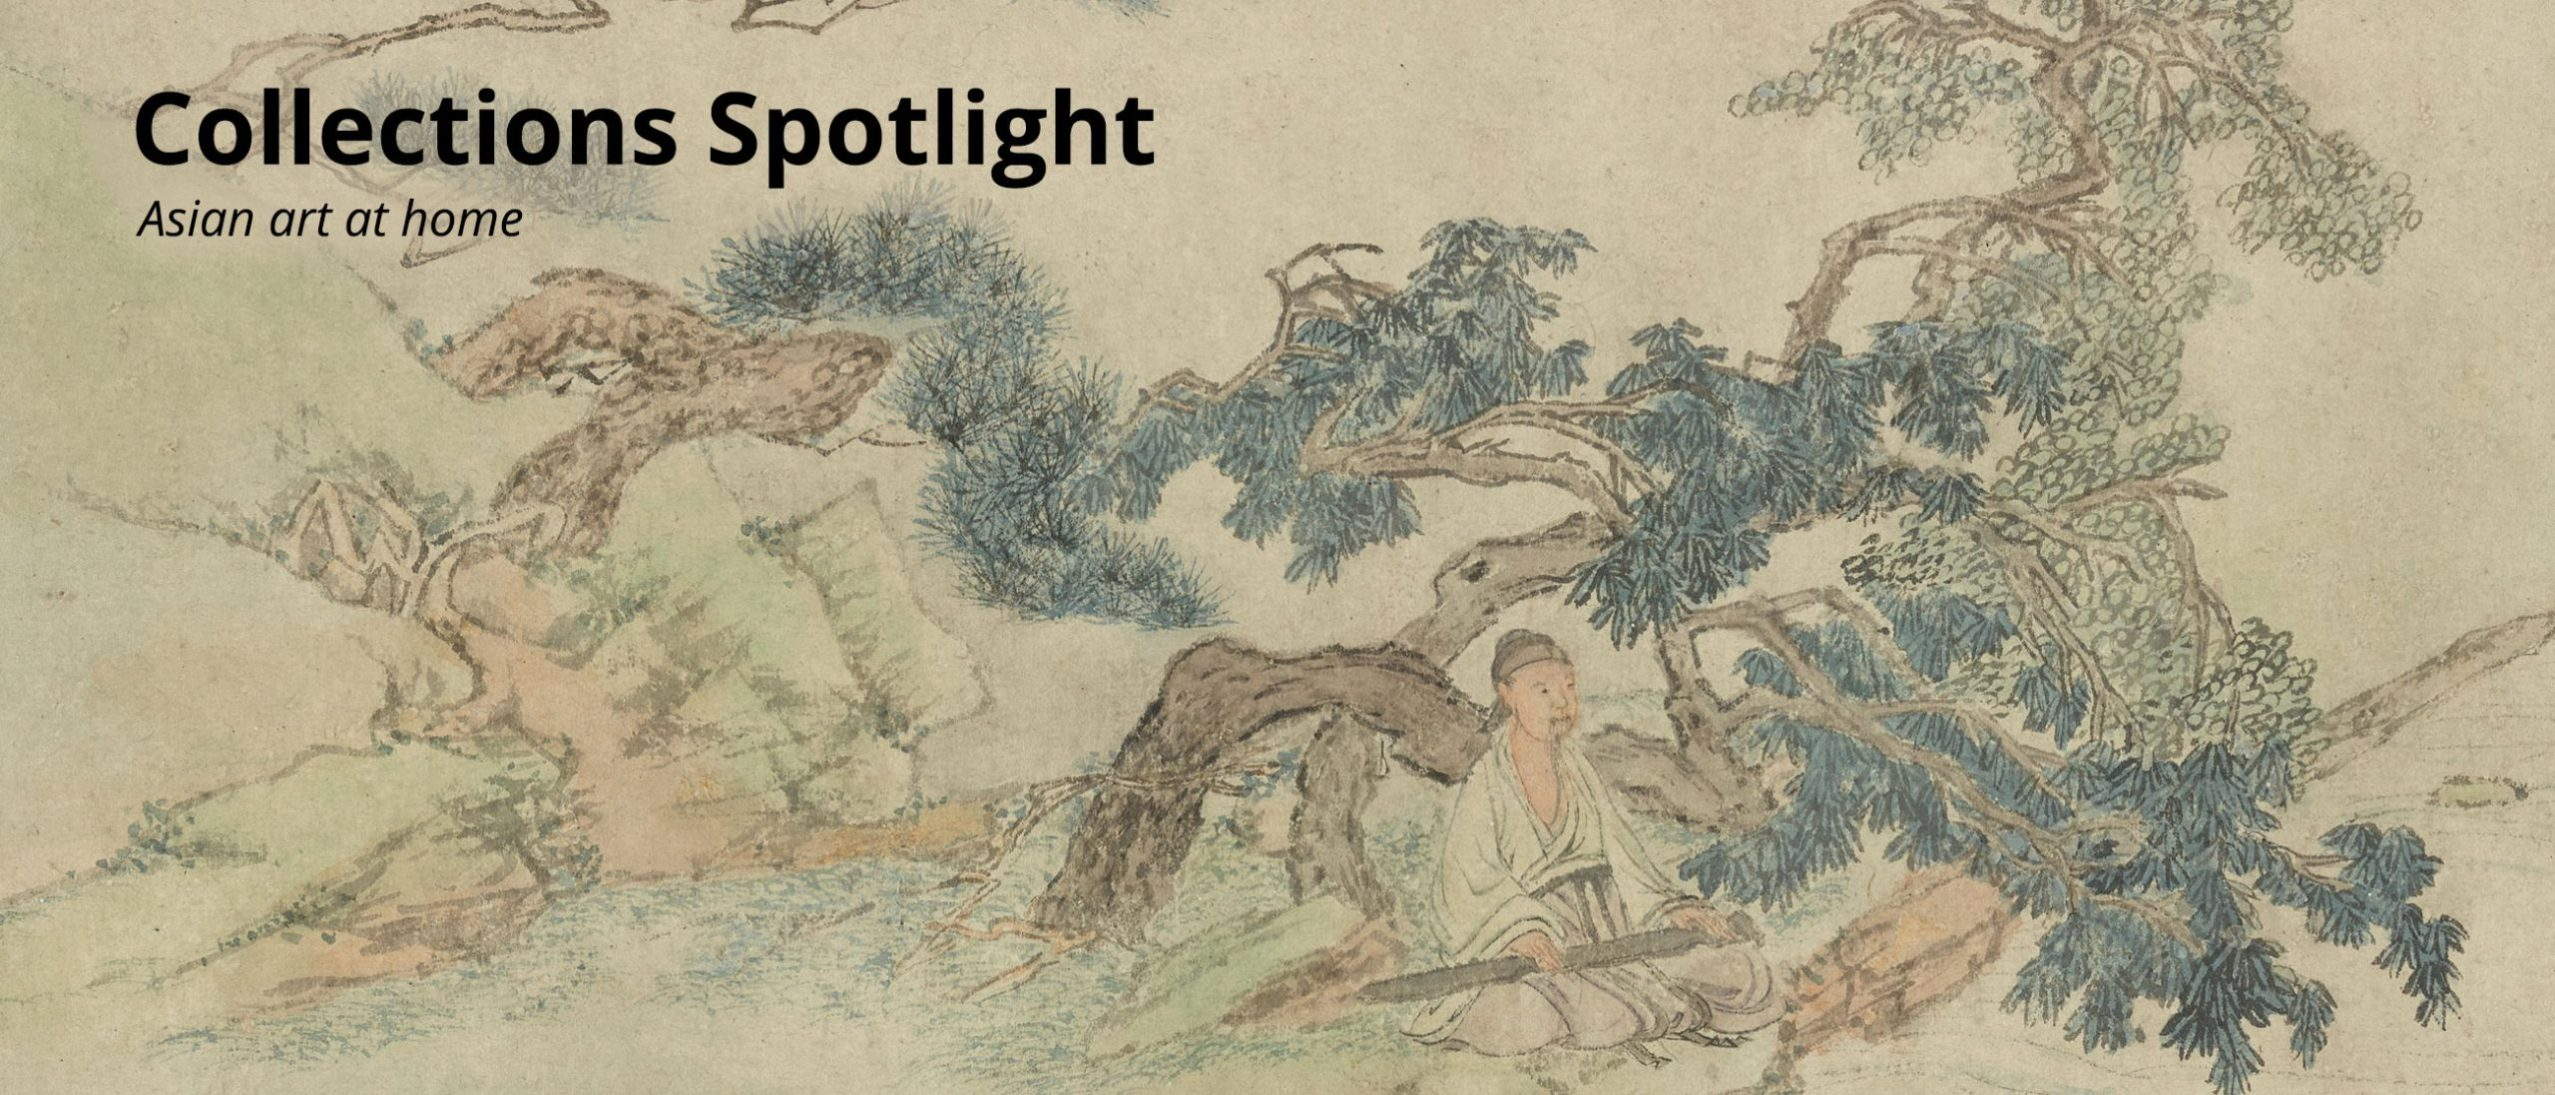 Collections Spotlight: Playing the Zither beneath the pine tree